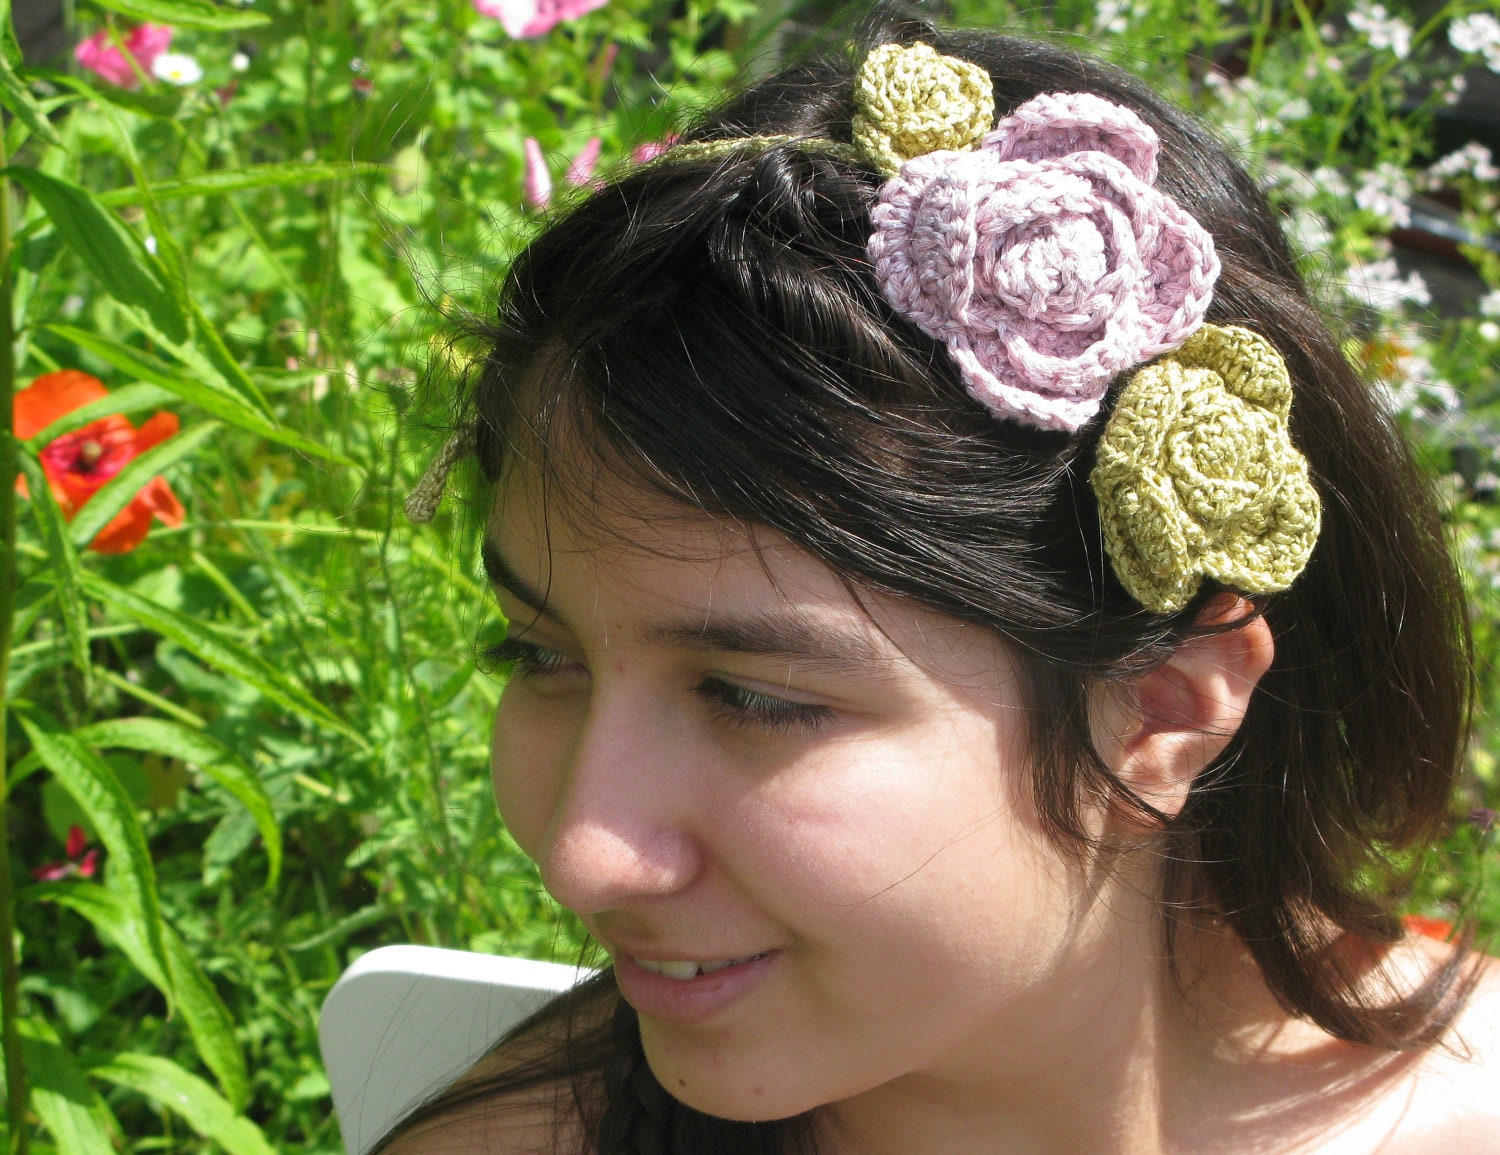 A Rose is a rose III headband or necklace in delicate pink and olive shades